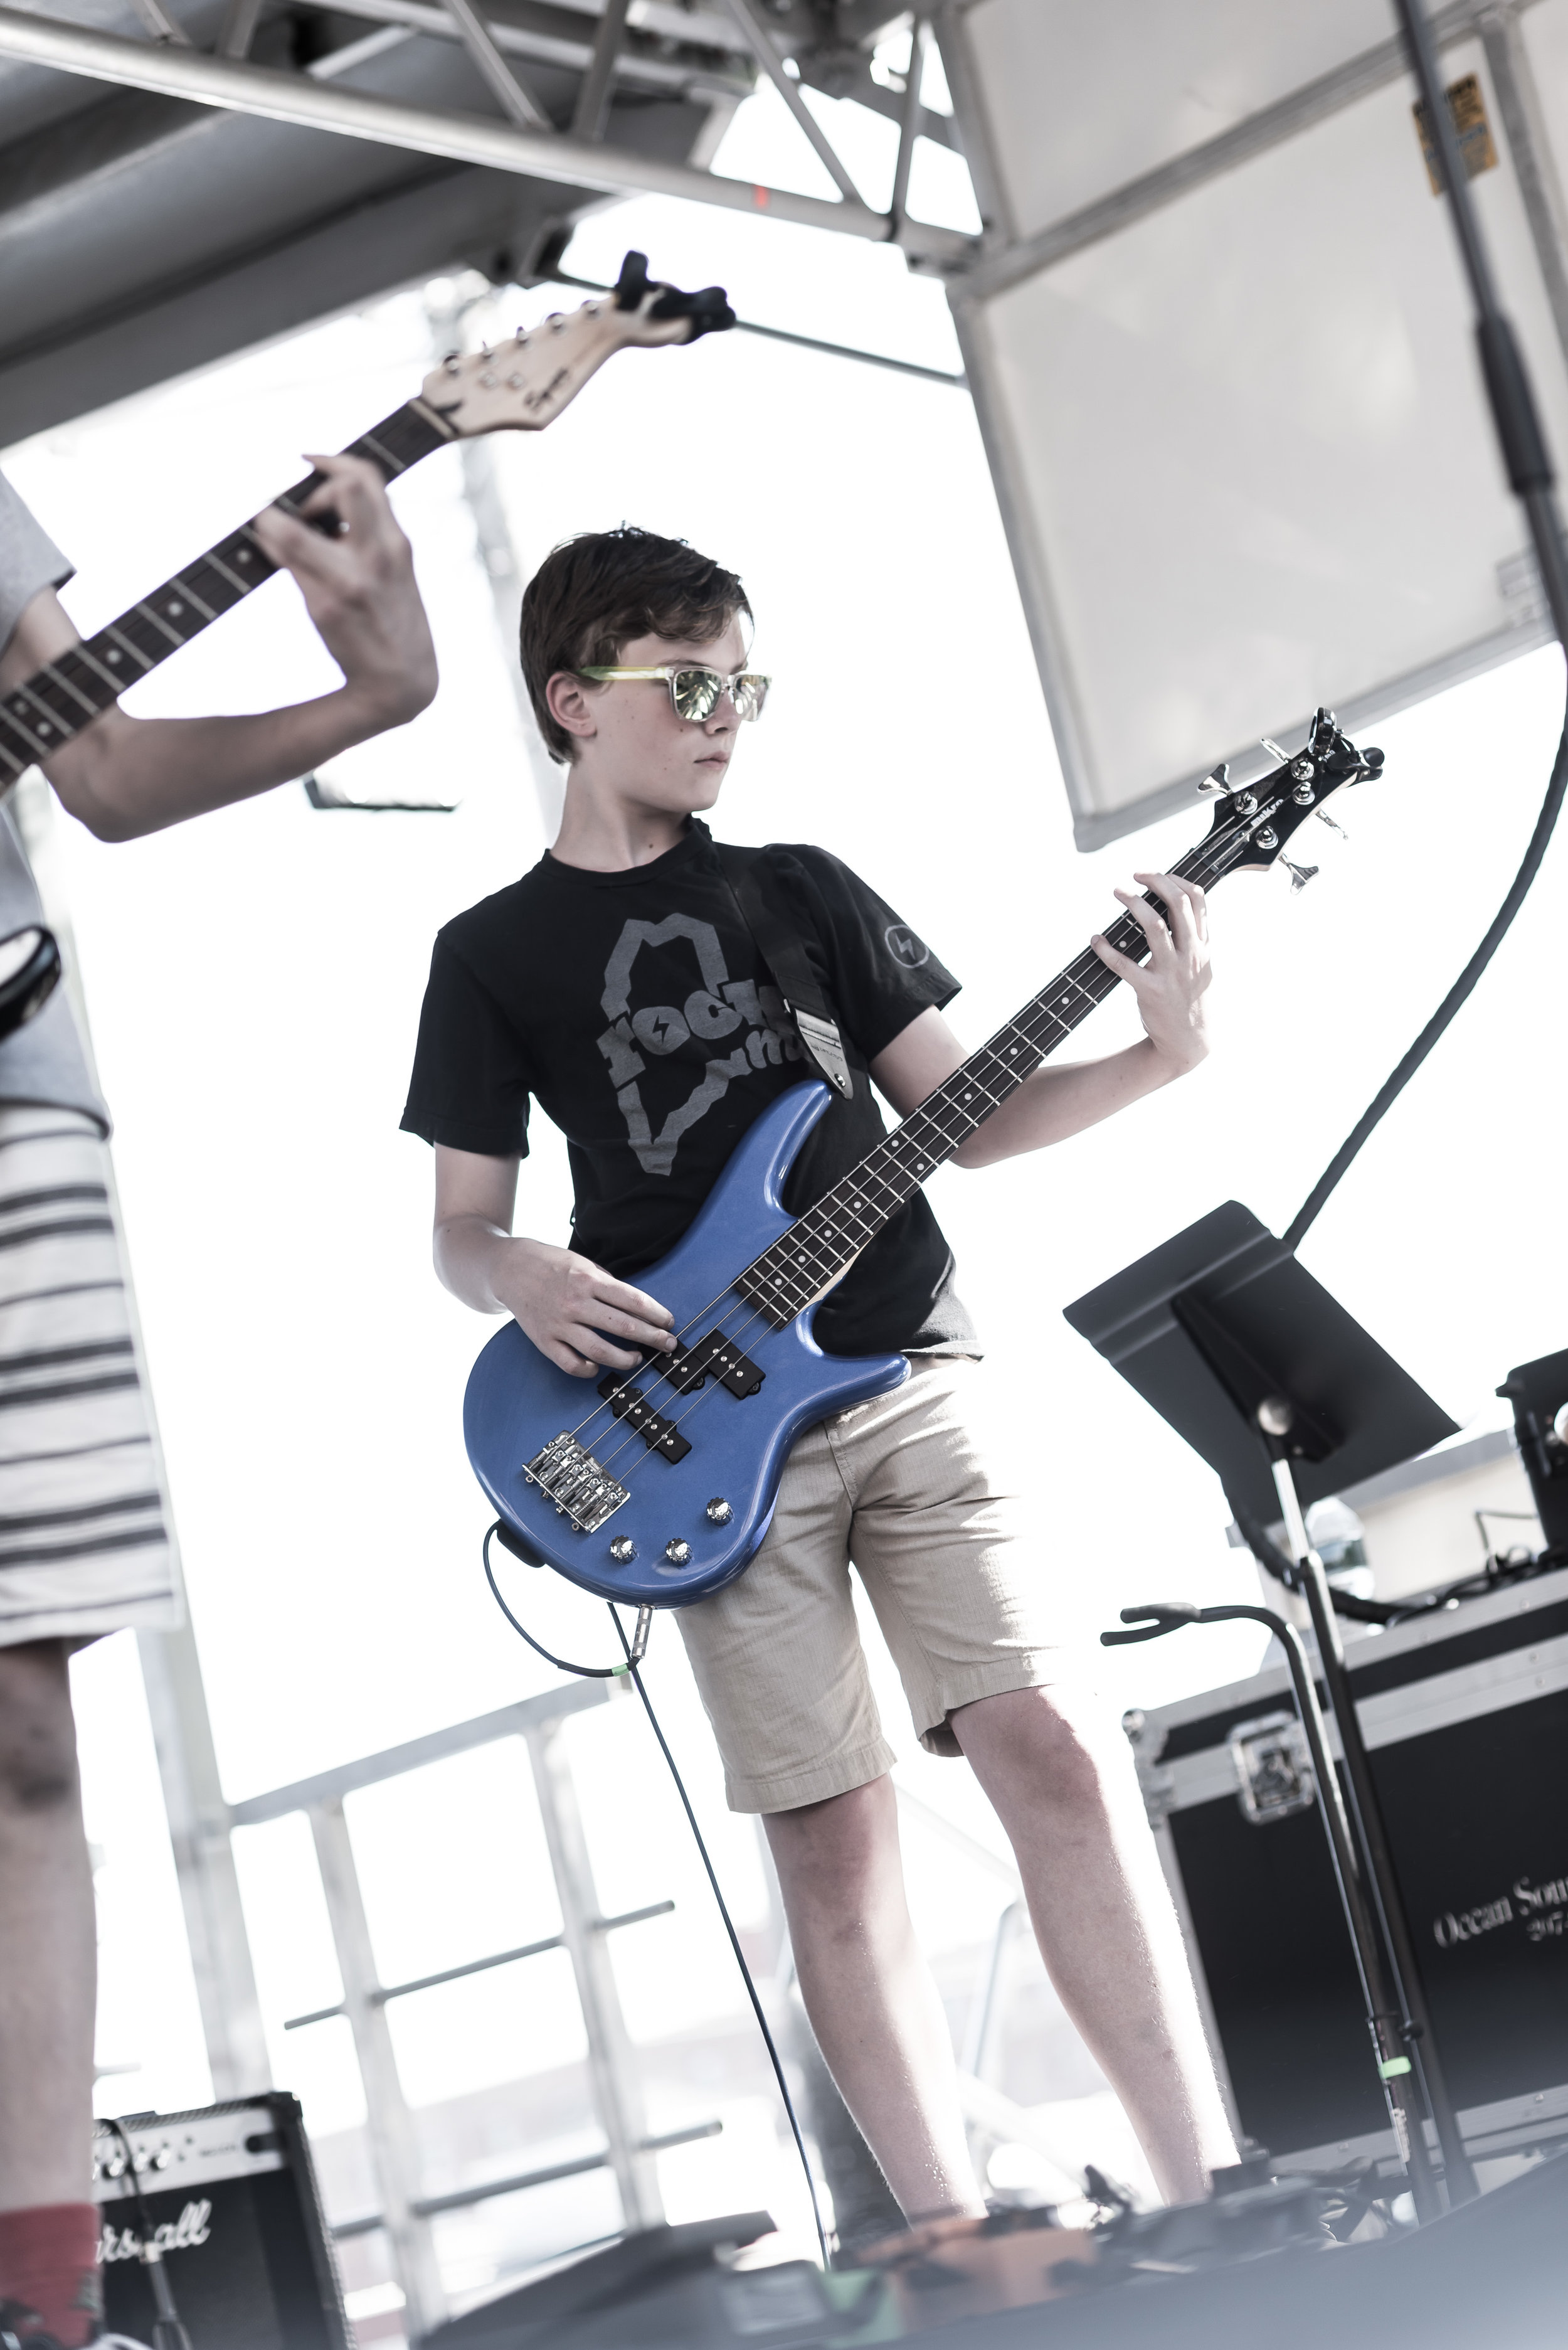 PORTLAND CAMPS: - June 17 - 21 - Rock Camp (Junior & Teens), $325June 24 - July 5 - Junior Rock Camp, $550July 8 - 19 - Ultimate Rock Camp, $600July 22 - Aug 2 - Songwriting & Recording Camp, $700August 5 - 9 - Girls Rock Camp, $325August 5 - 9 - Covers Camp, $325August 5 - 9 - Strings Camp, $325August 12 - 23 - Junior Rock Camp, $600August 26 - 30 - Covers Camp, $325